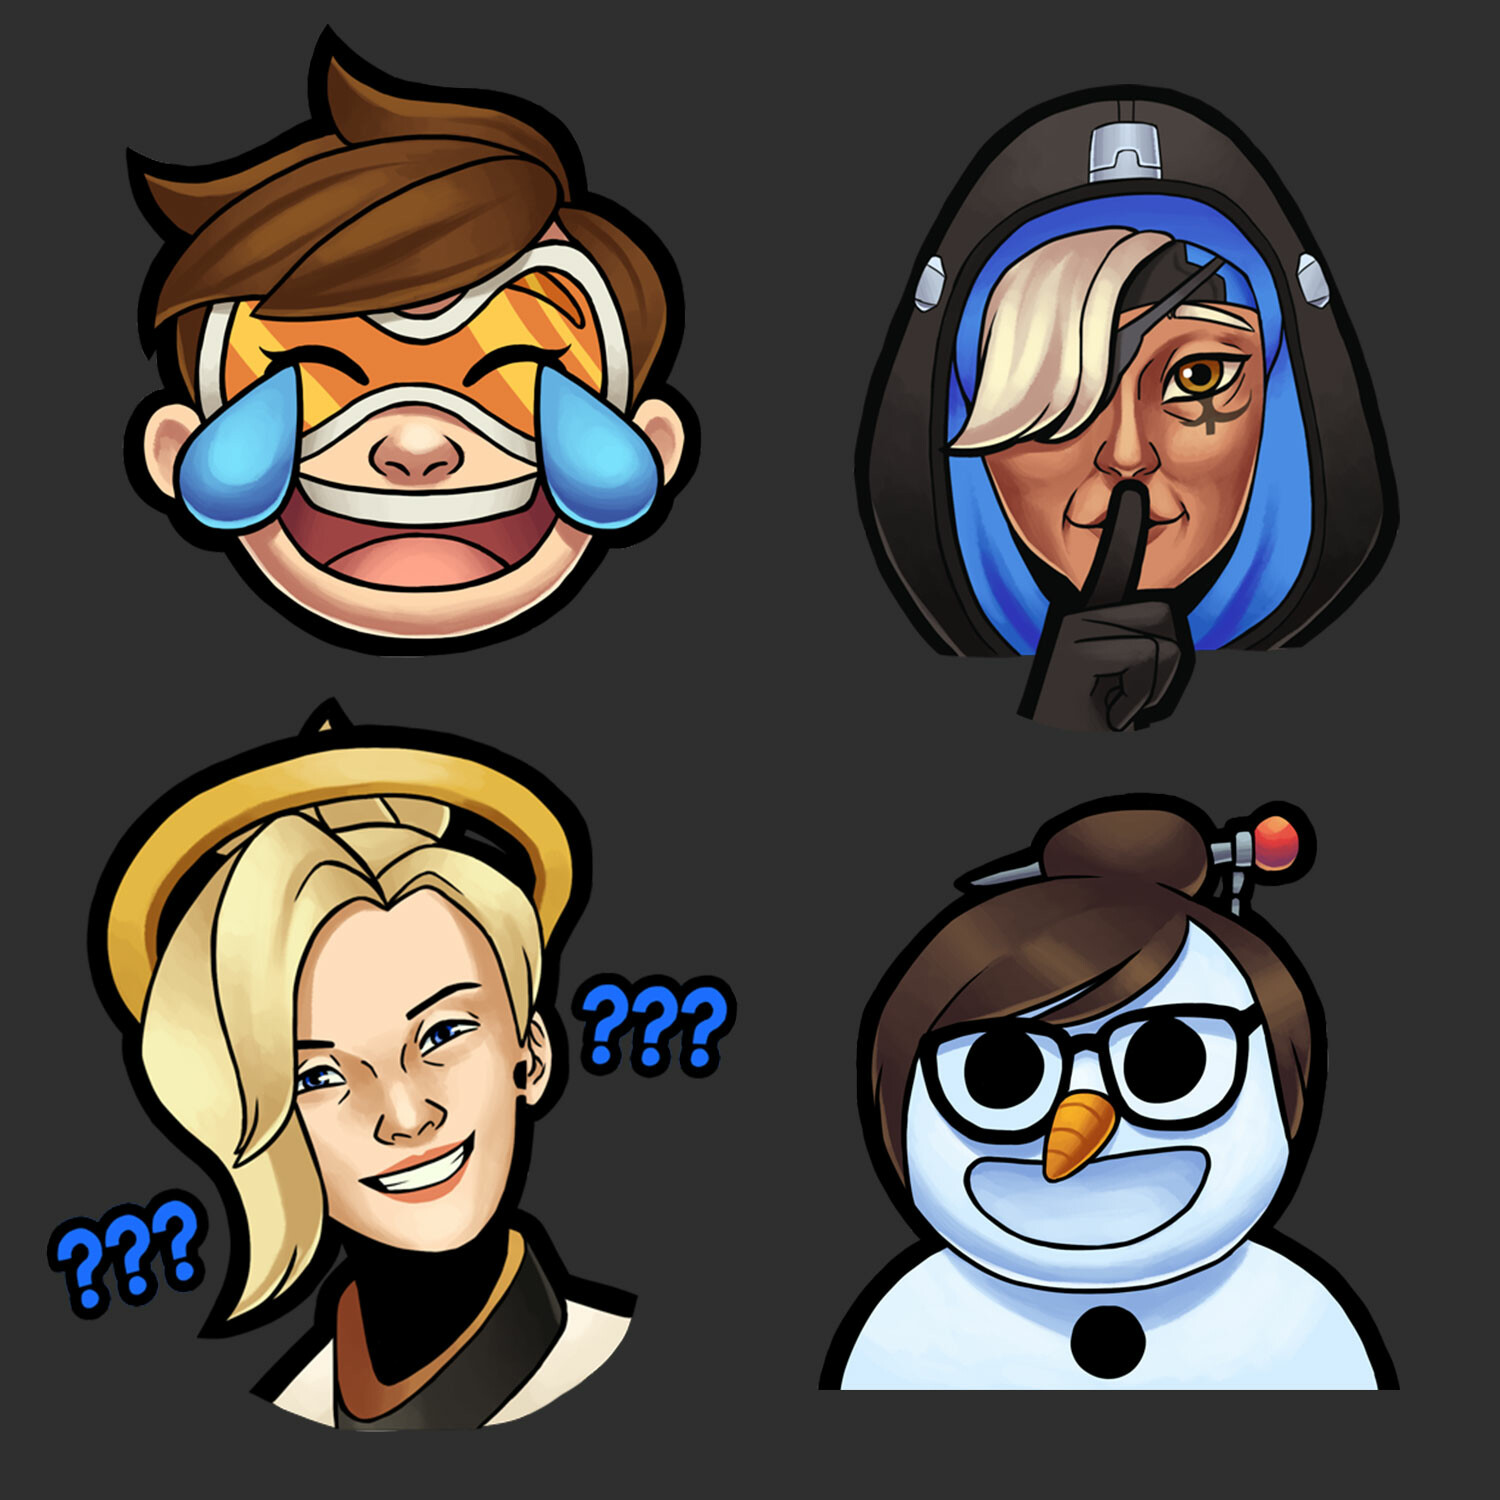 Overwatch themed emotes